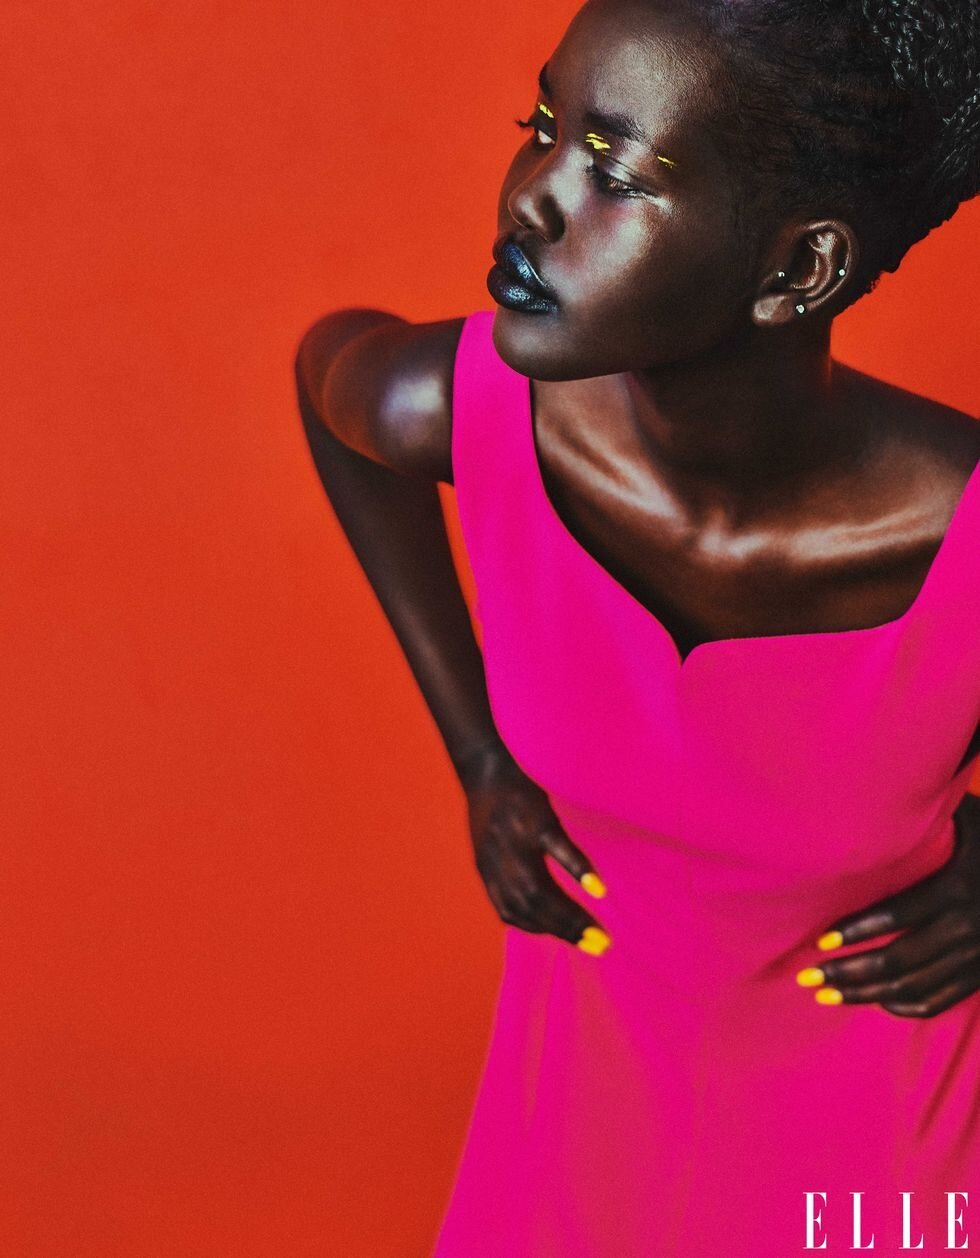 Adut Akech for ELLE US August 2021. Photographed by Chris Colls and styled by Alex White.